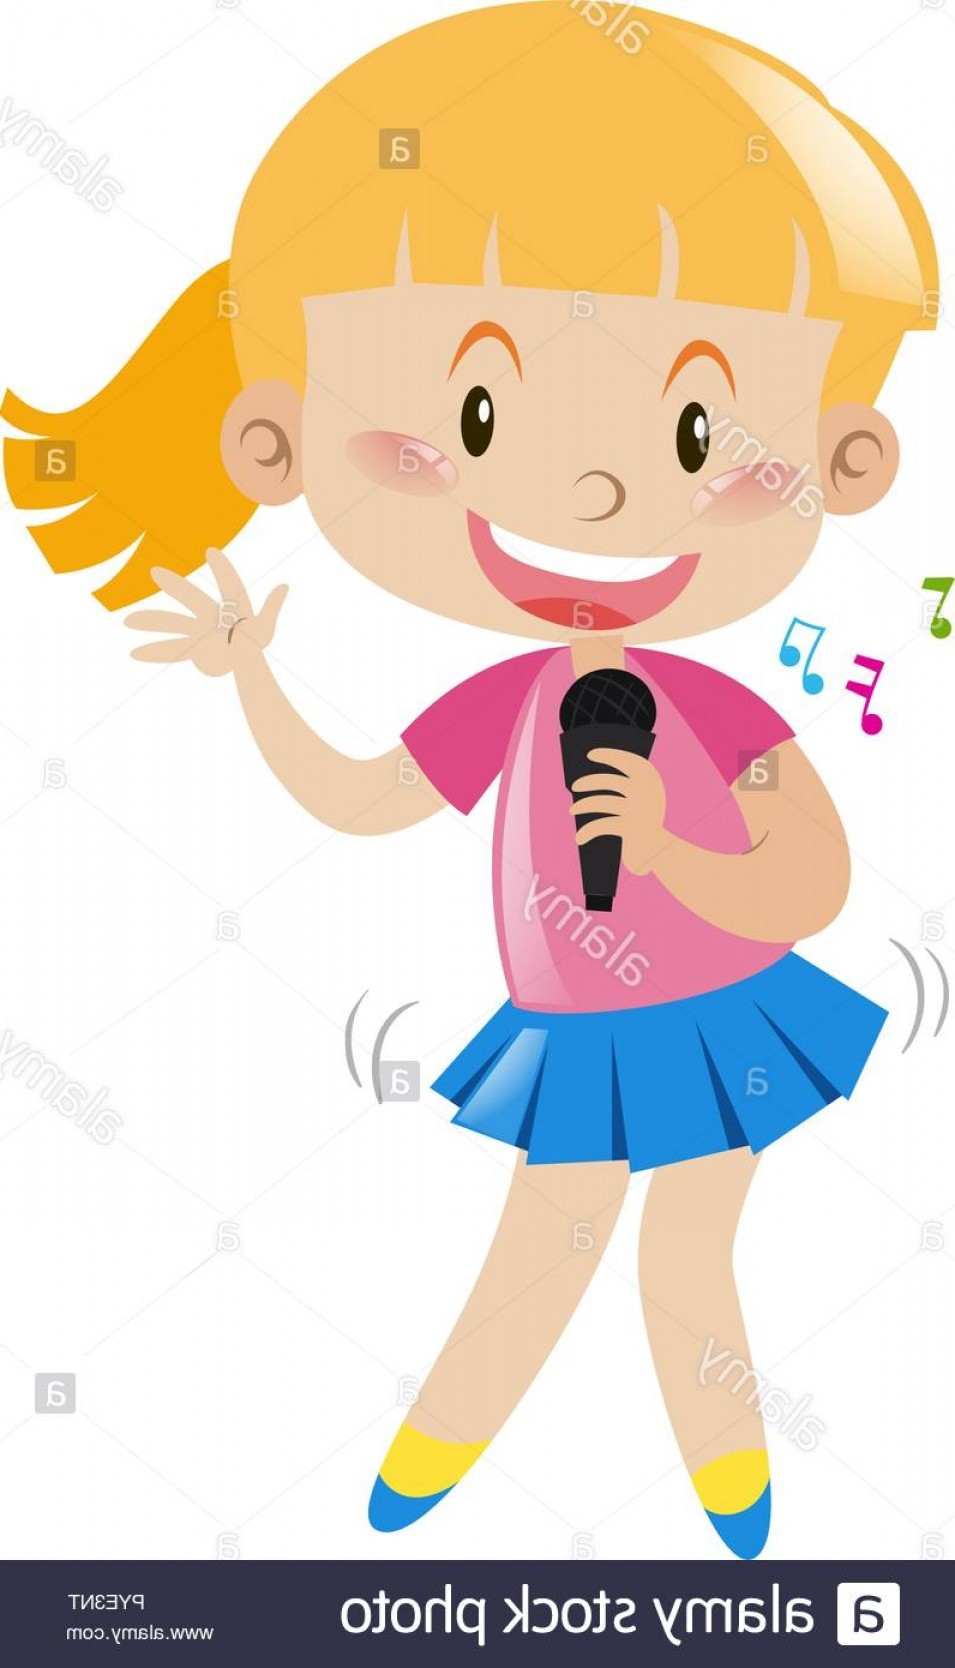 Singing Girls Vector Art: Girl With Microphone Singing And Dancing Illustration Image